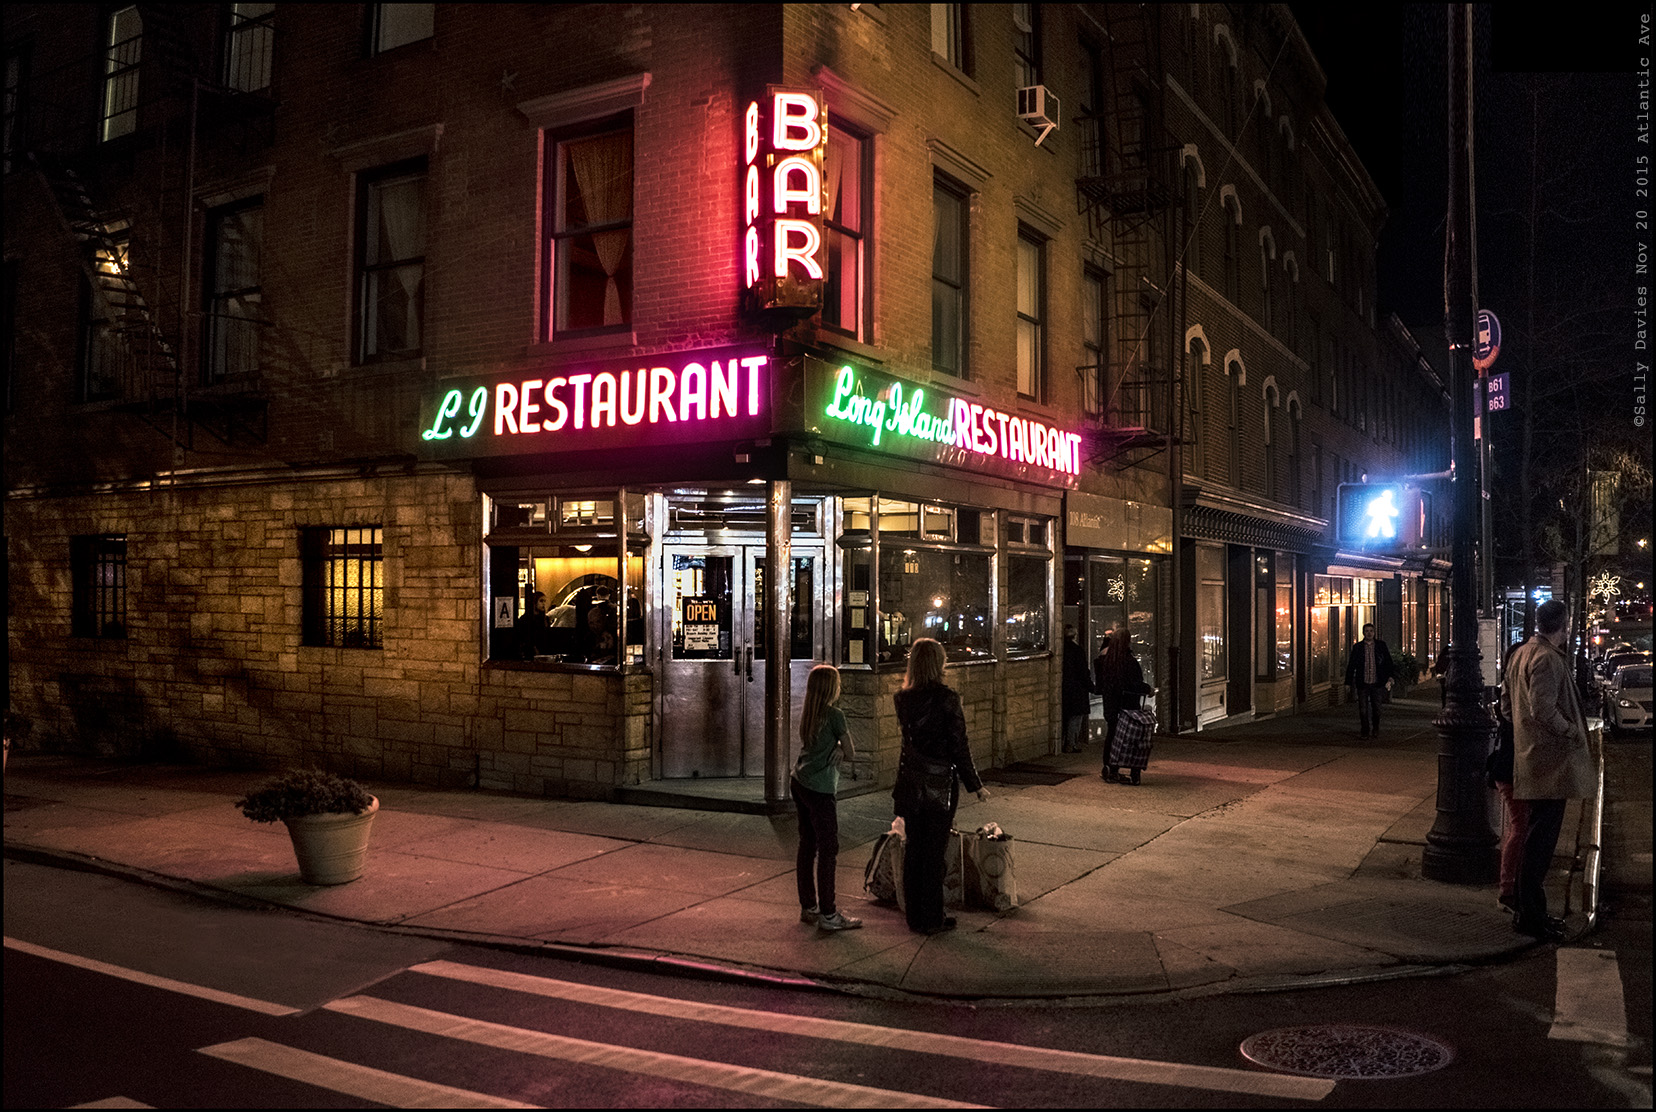 Bar long island diner nov 20 2015 DSC02049.jpg